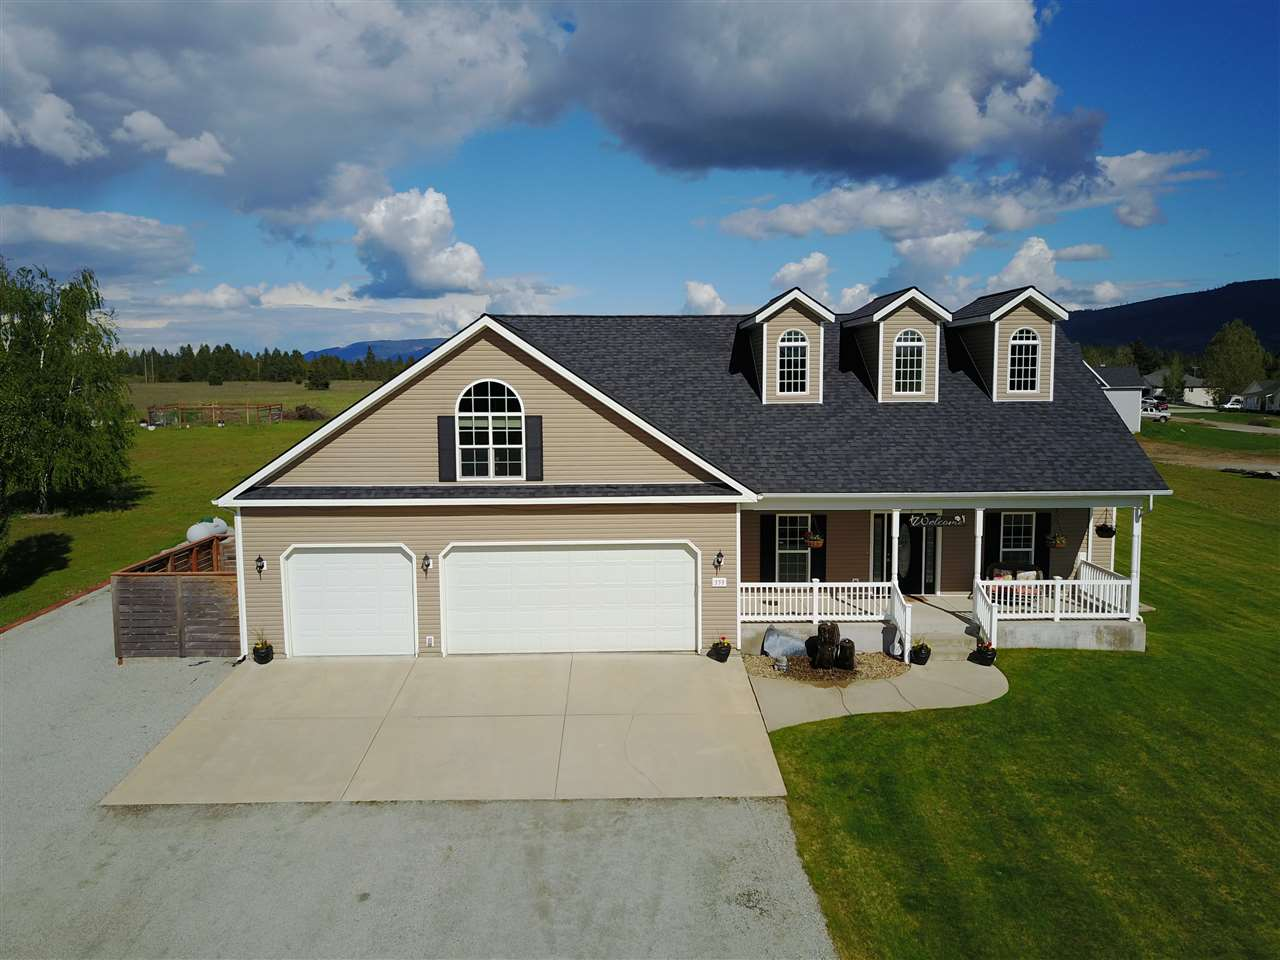 Single Family Home for Sale at 359 Solar Road 359 Solar Road Oldtown, Idaho 83822 United States